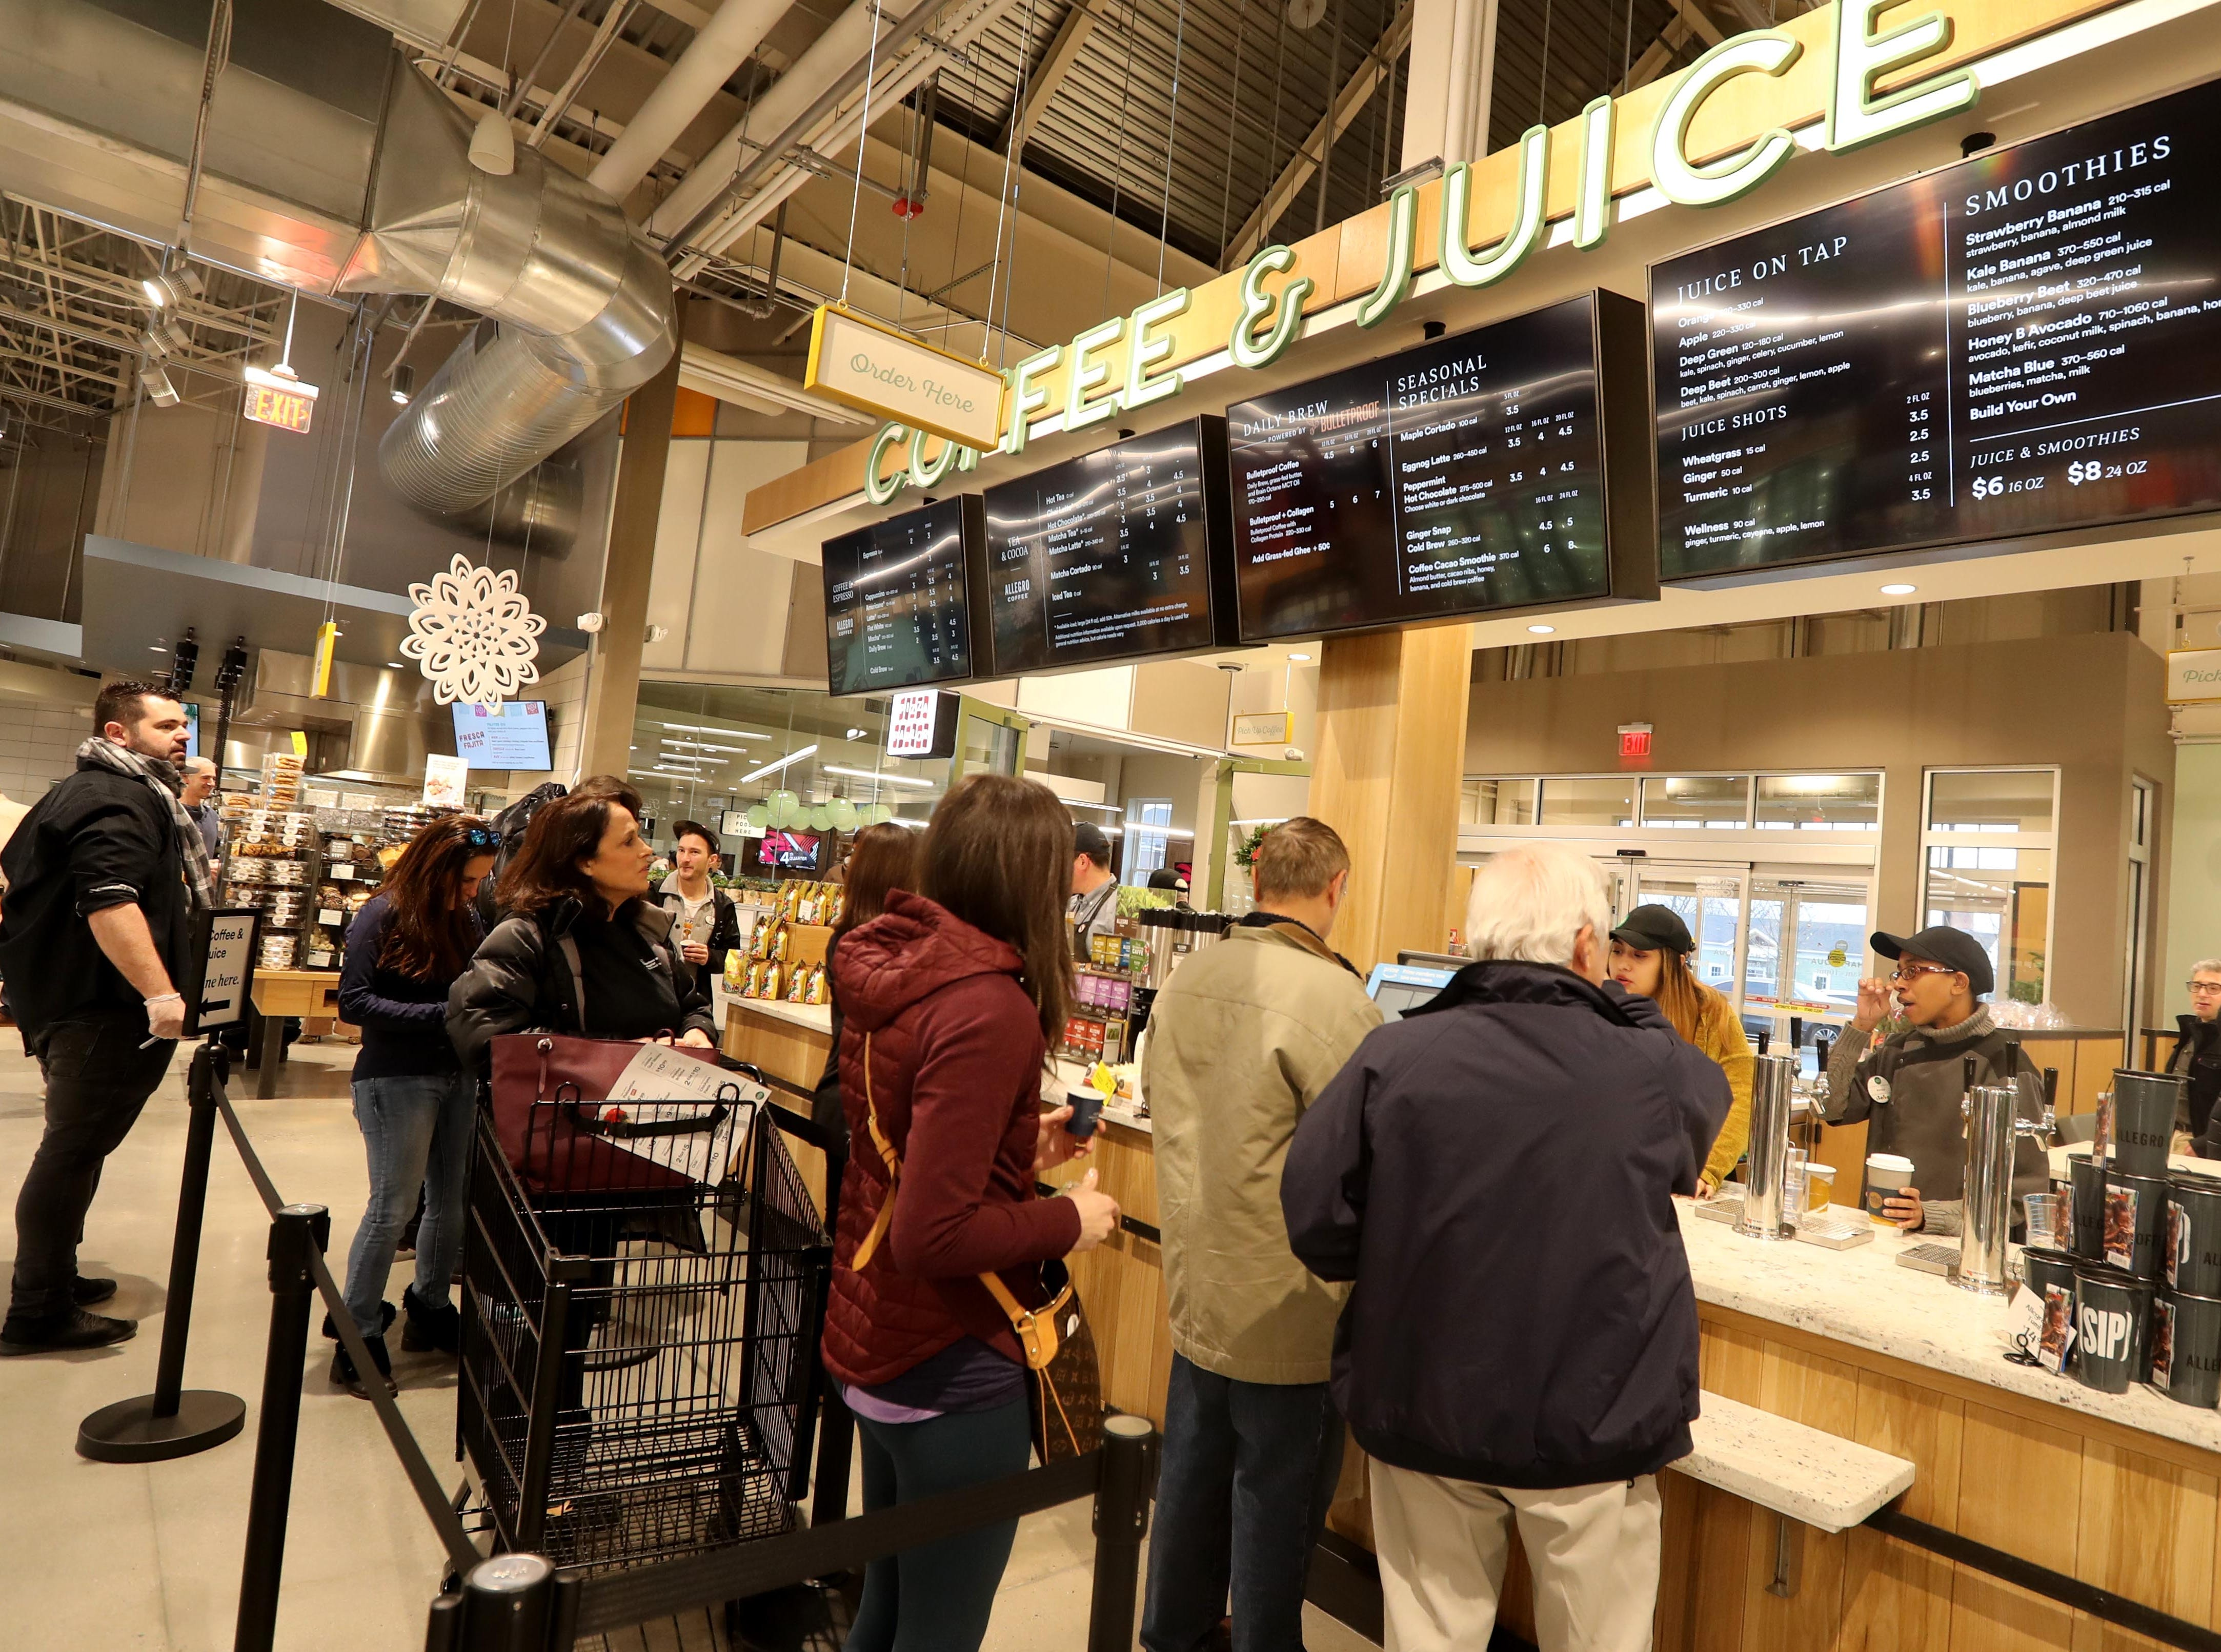 Shoppers stop by the coffee and juice bar at the new Whole Foods in Chappaqua Dec. 15, 2018. The 40,000 square foot store opened to shoppers on the site of the formers Readers Digest headquarters. The New Castle Town Board and Planning Board approved a temporary traffic plan for the Route 117-Roaring Brook Road intersection that allowed the store to open.